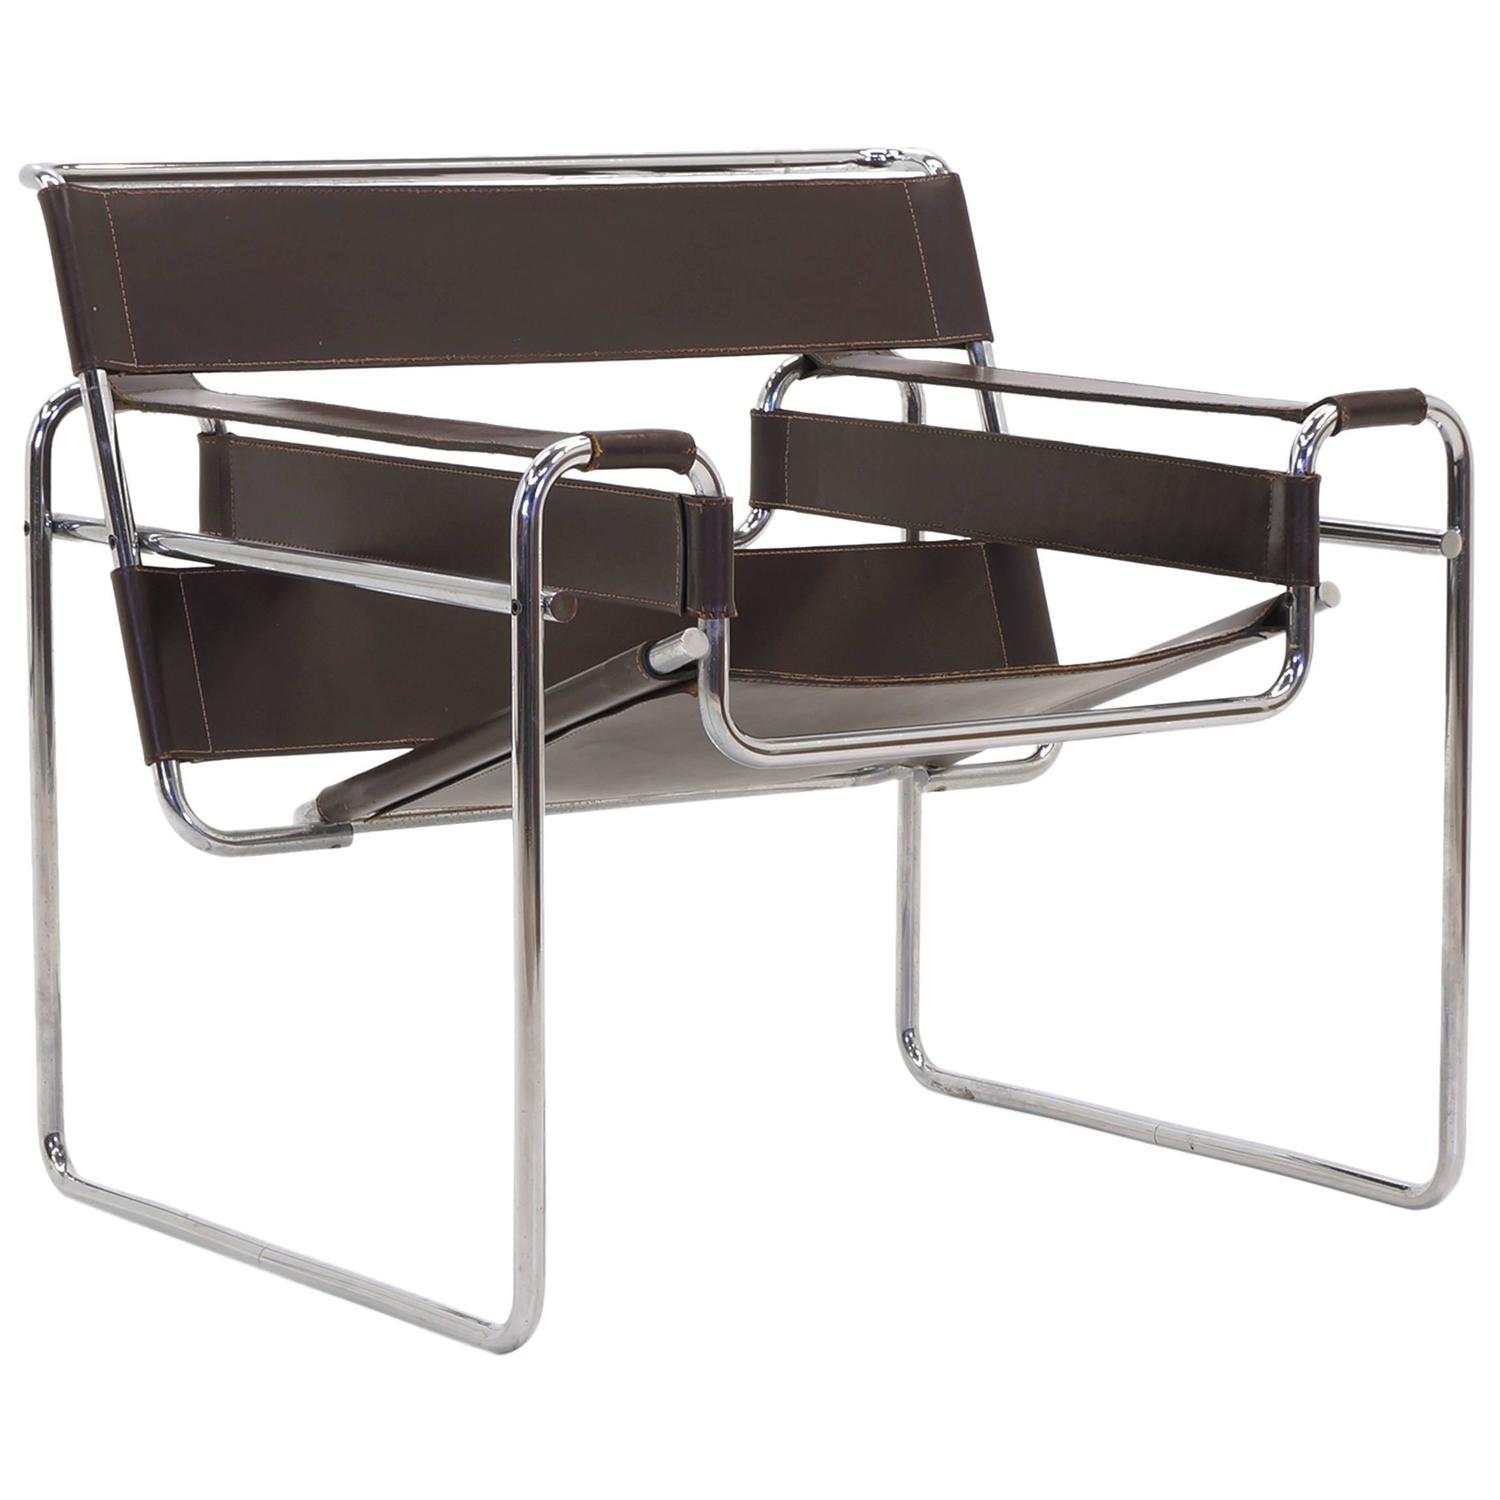 Early Original Knoll Gavina Wassily Chair by Marcel Breuer in